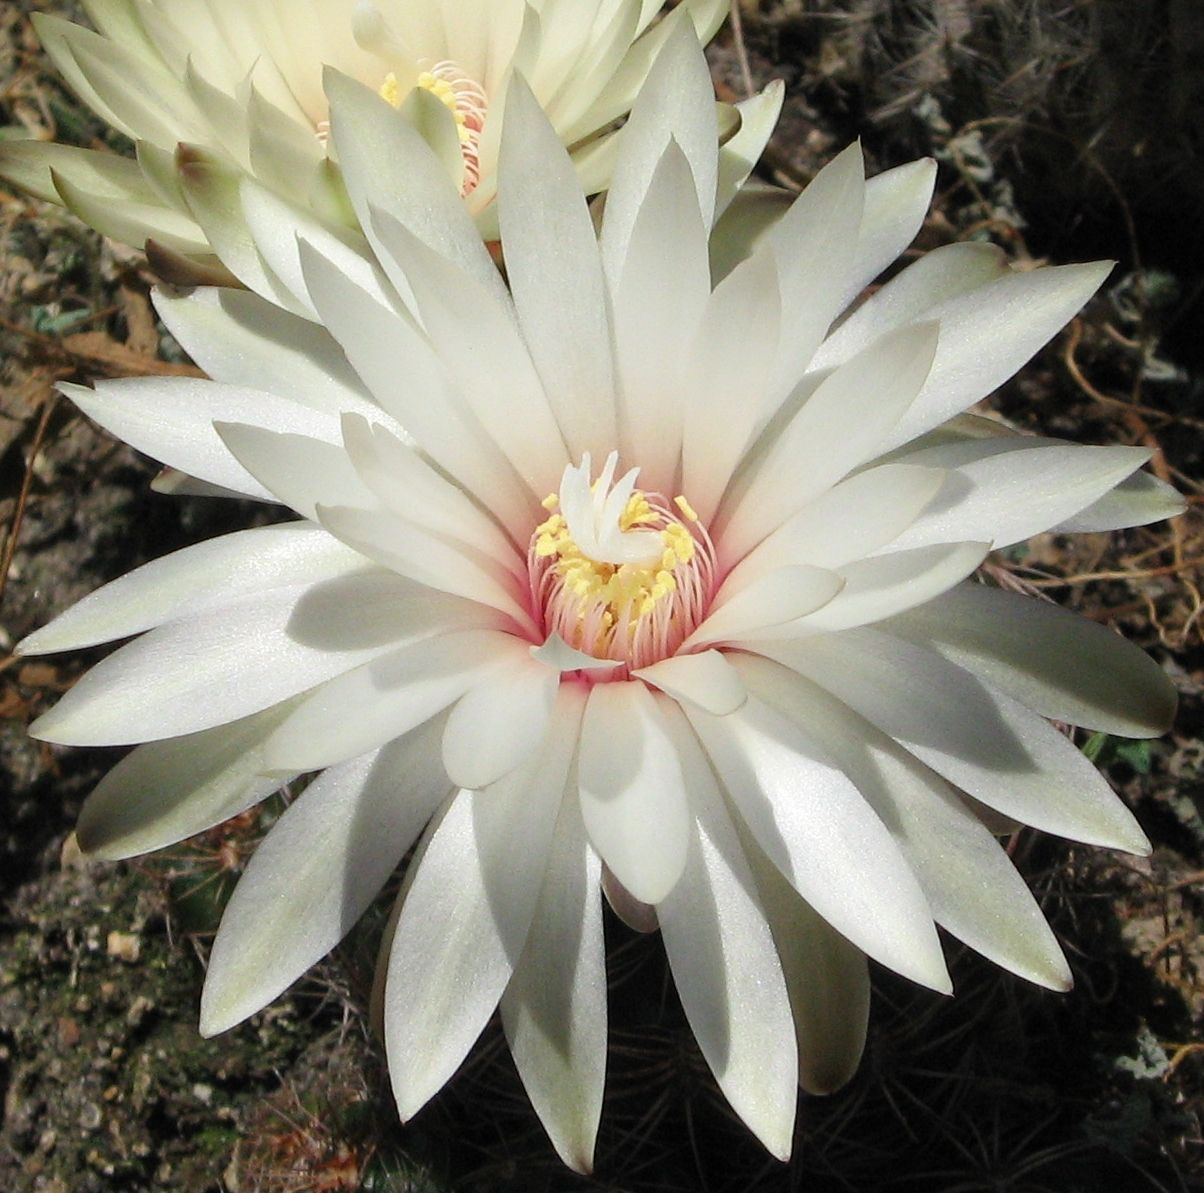 Cactus Flower White Cactus Flower Flowers 4 Pinterest